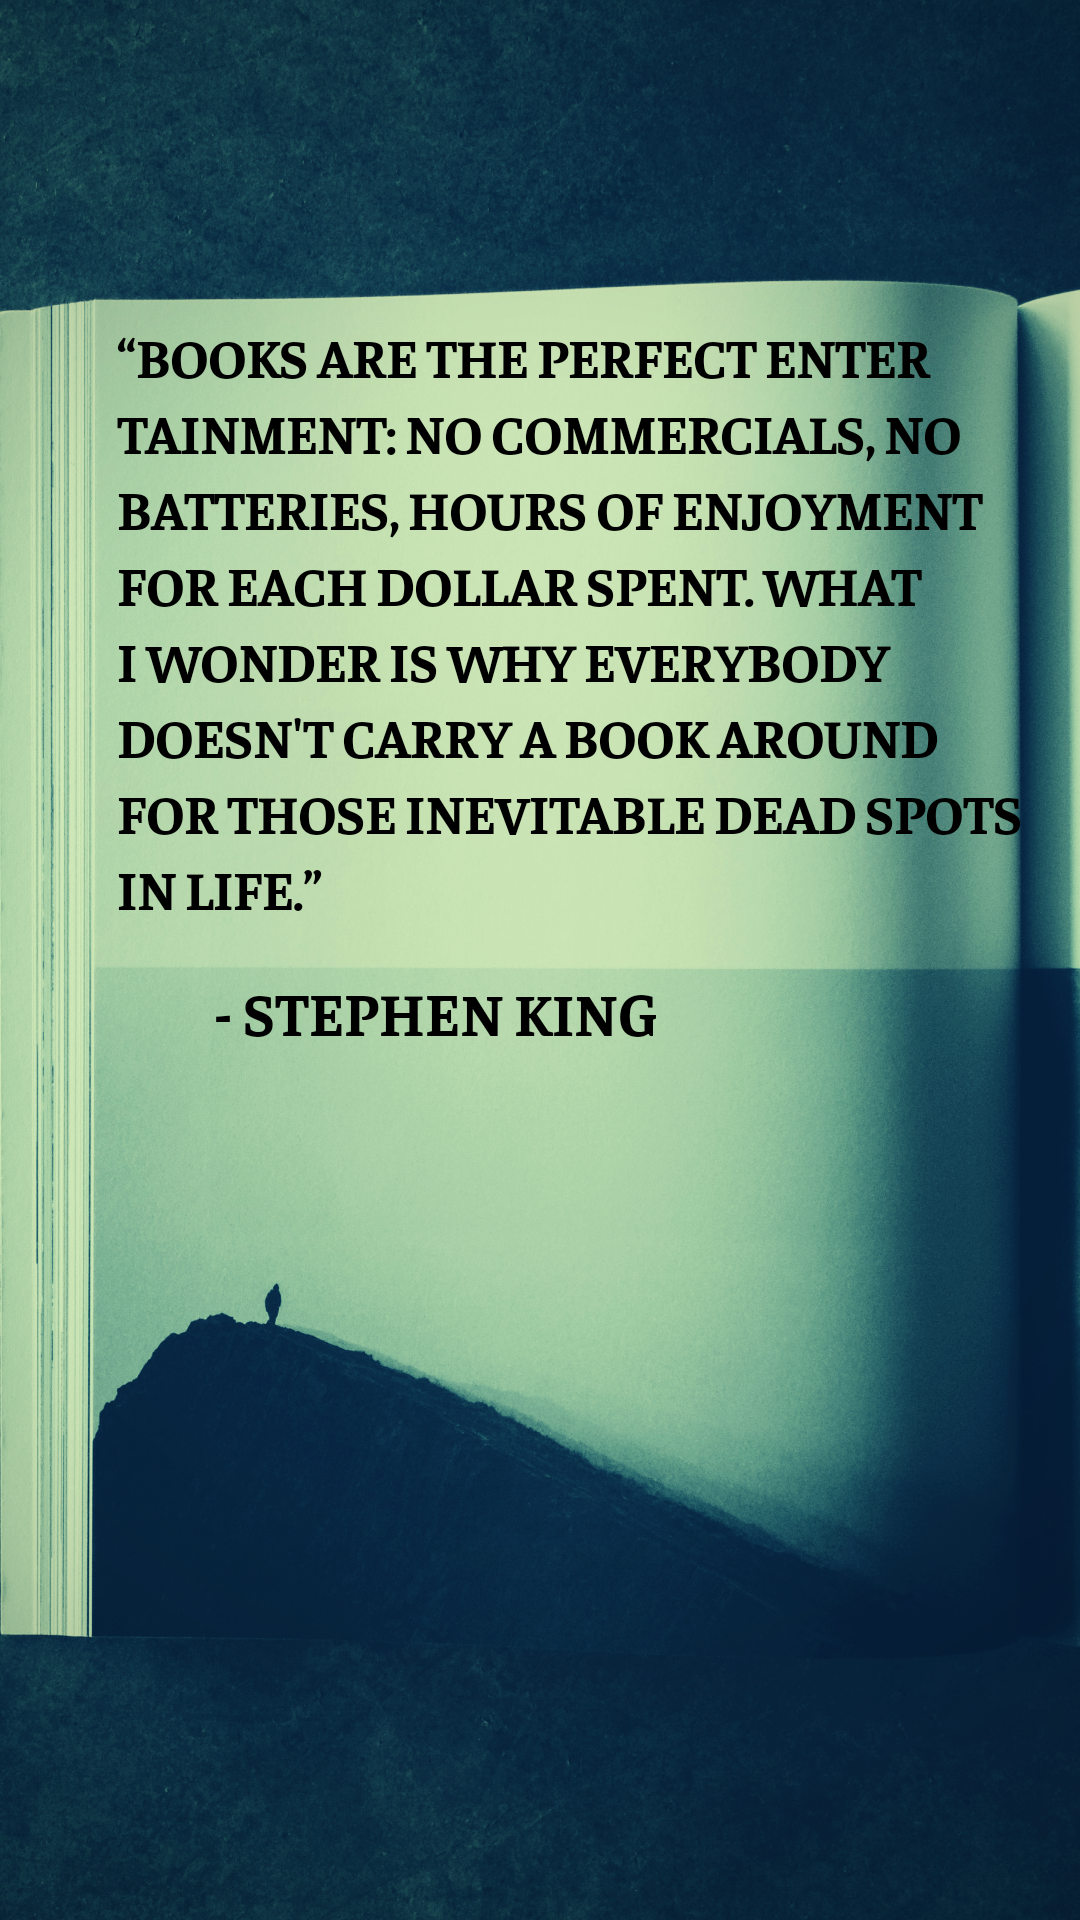 """BOOKS ARE THE PERFECT ENTERTAINMENT: NO COMMERCIALS, NO BATTERIES…"" By Stephen King (1080 x 1920)"